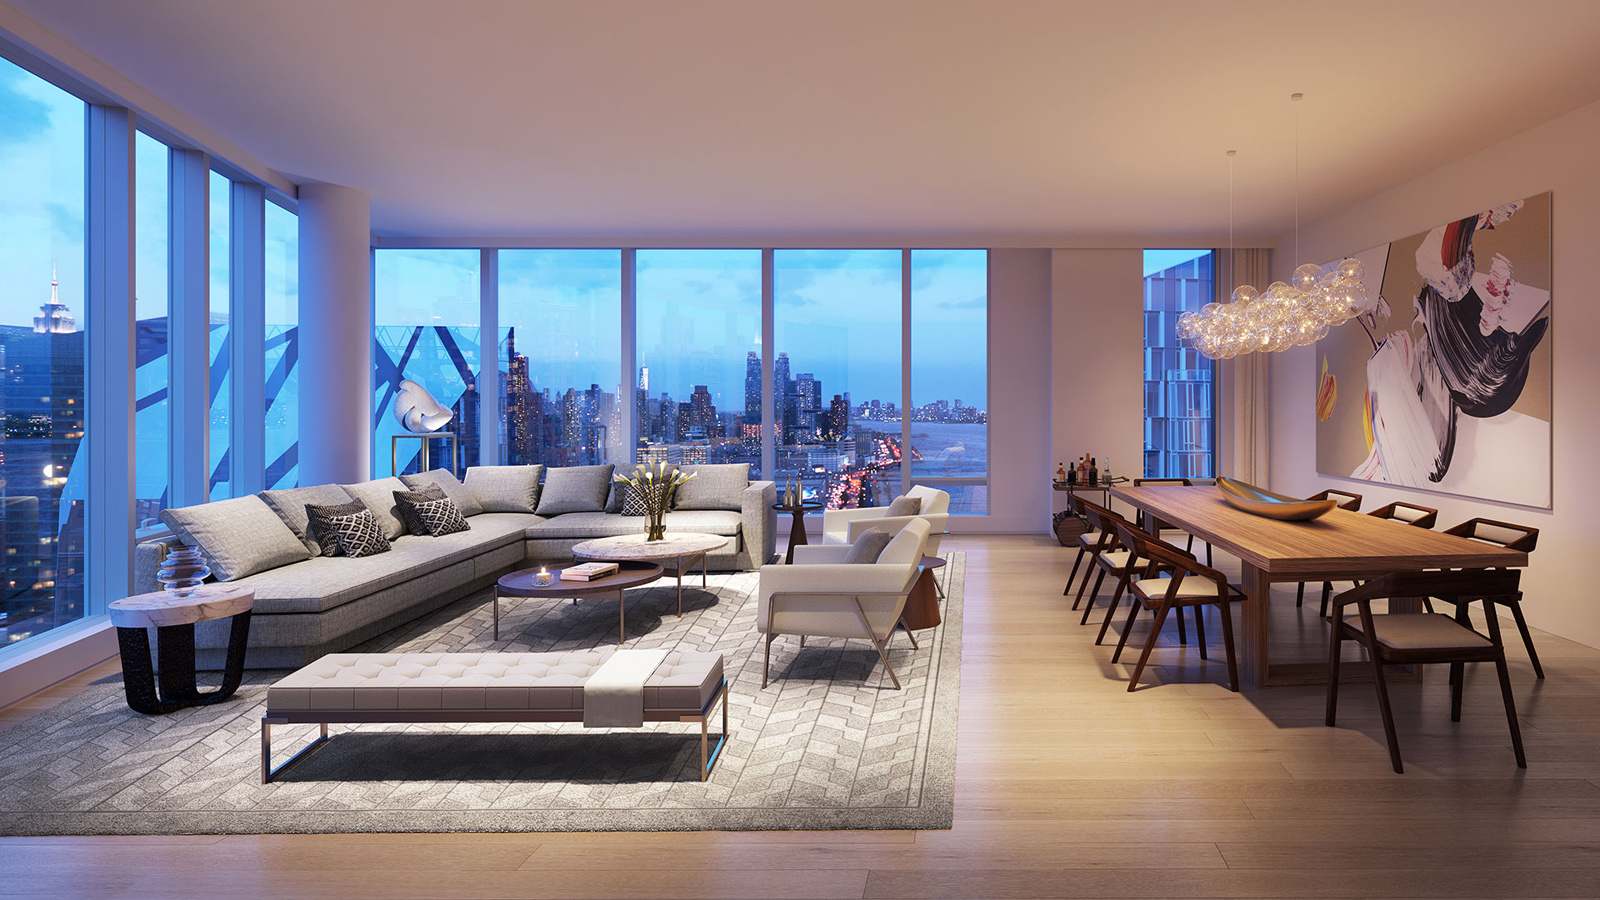 Two Waterline Square 400 West 61st Street Nyc Condo